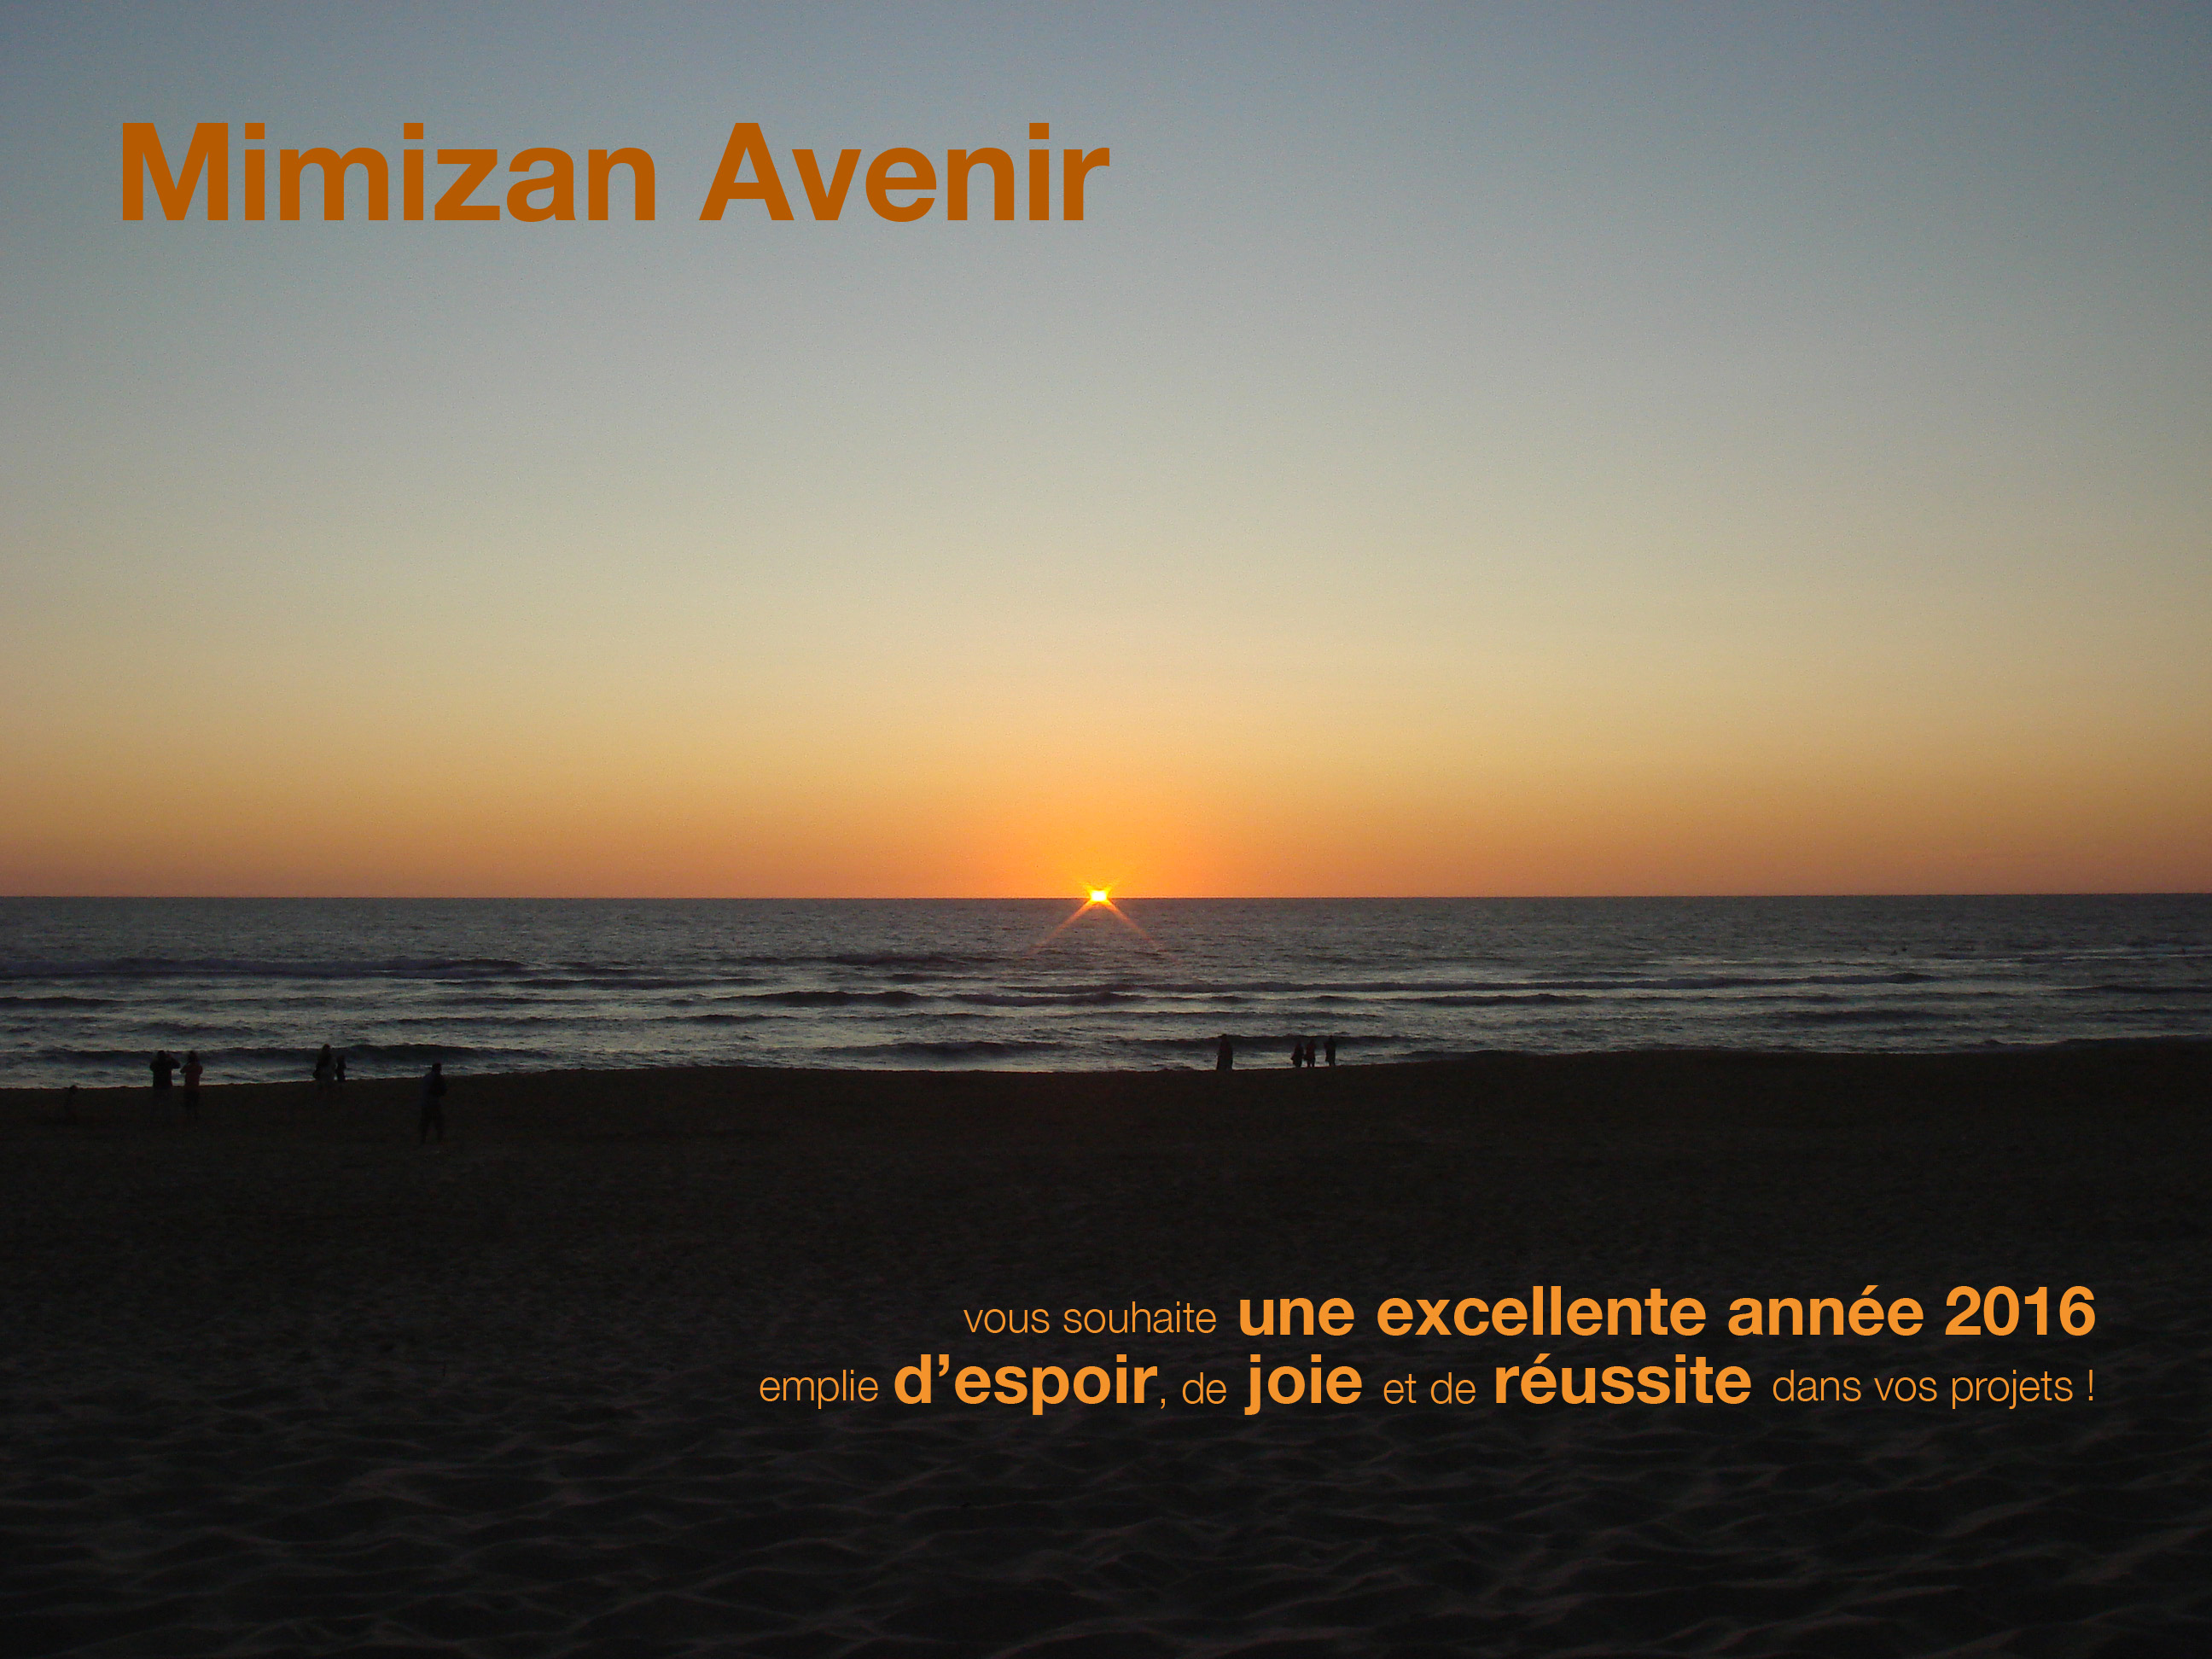 mimizan avenir voeux 2016 - version CB - Copie copie